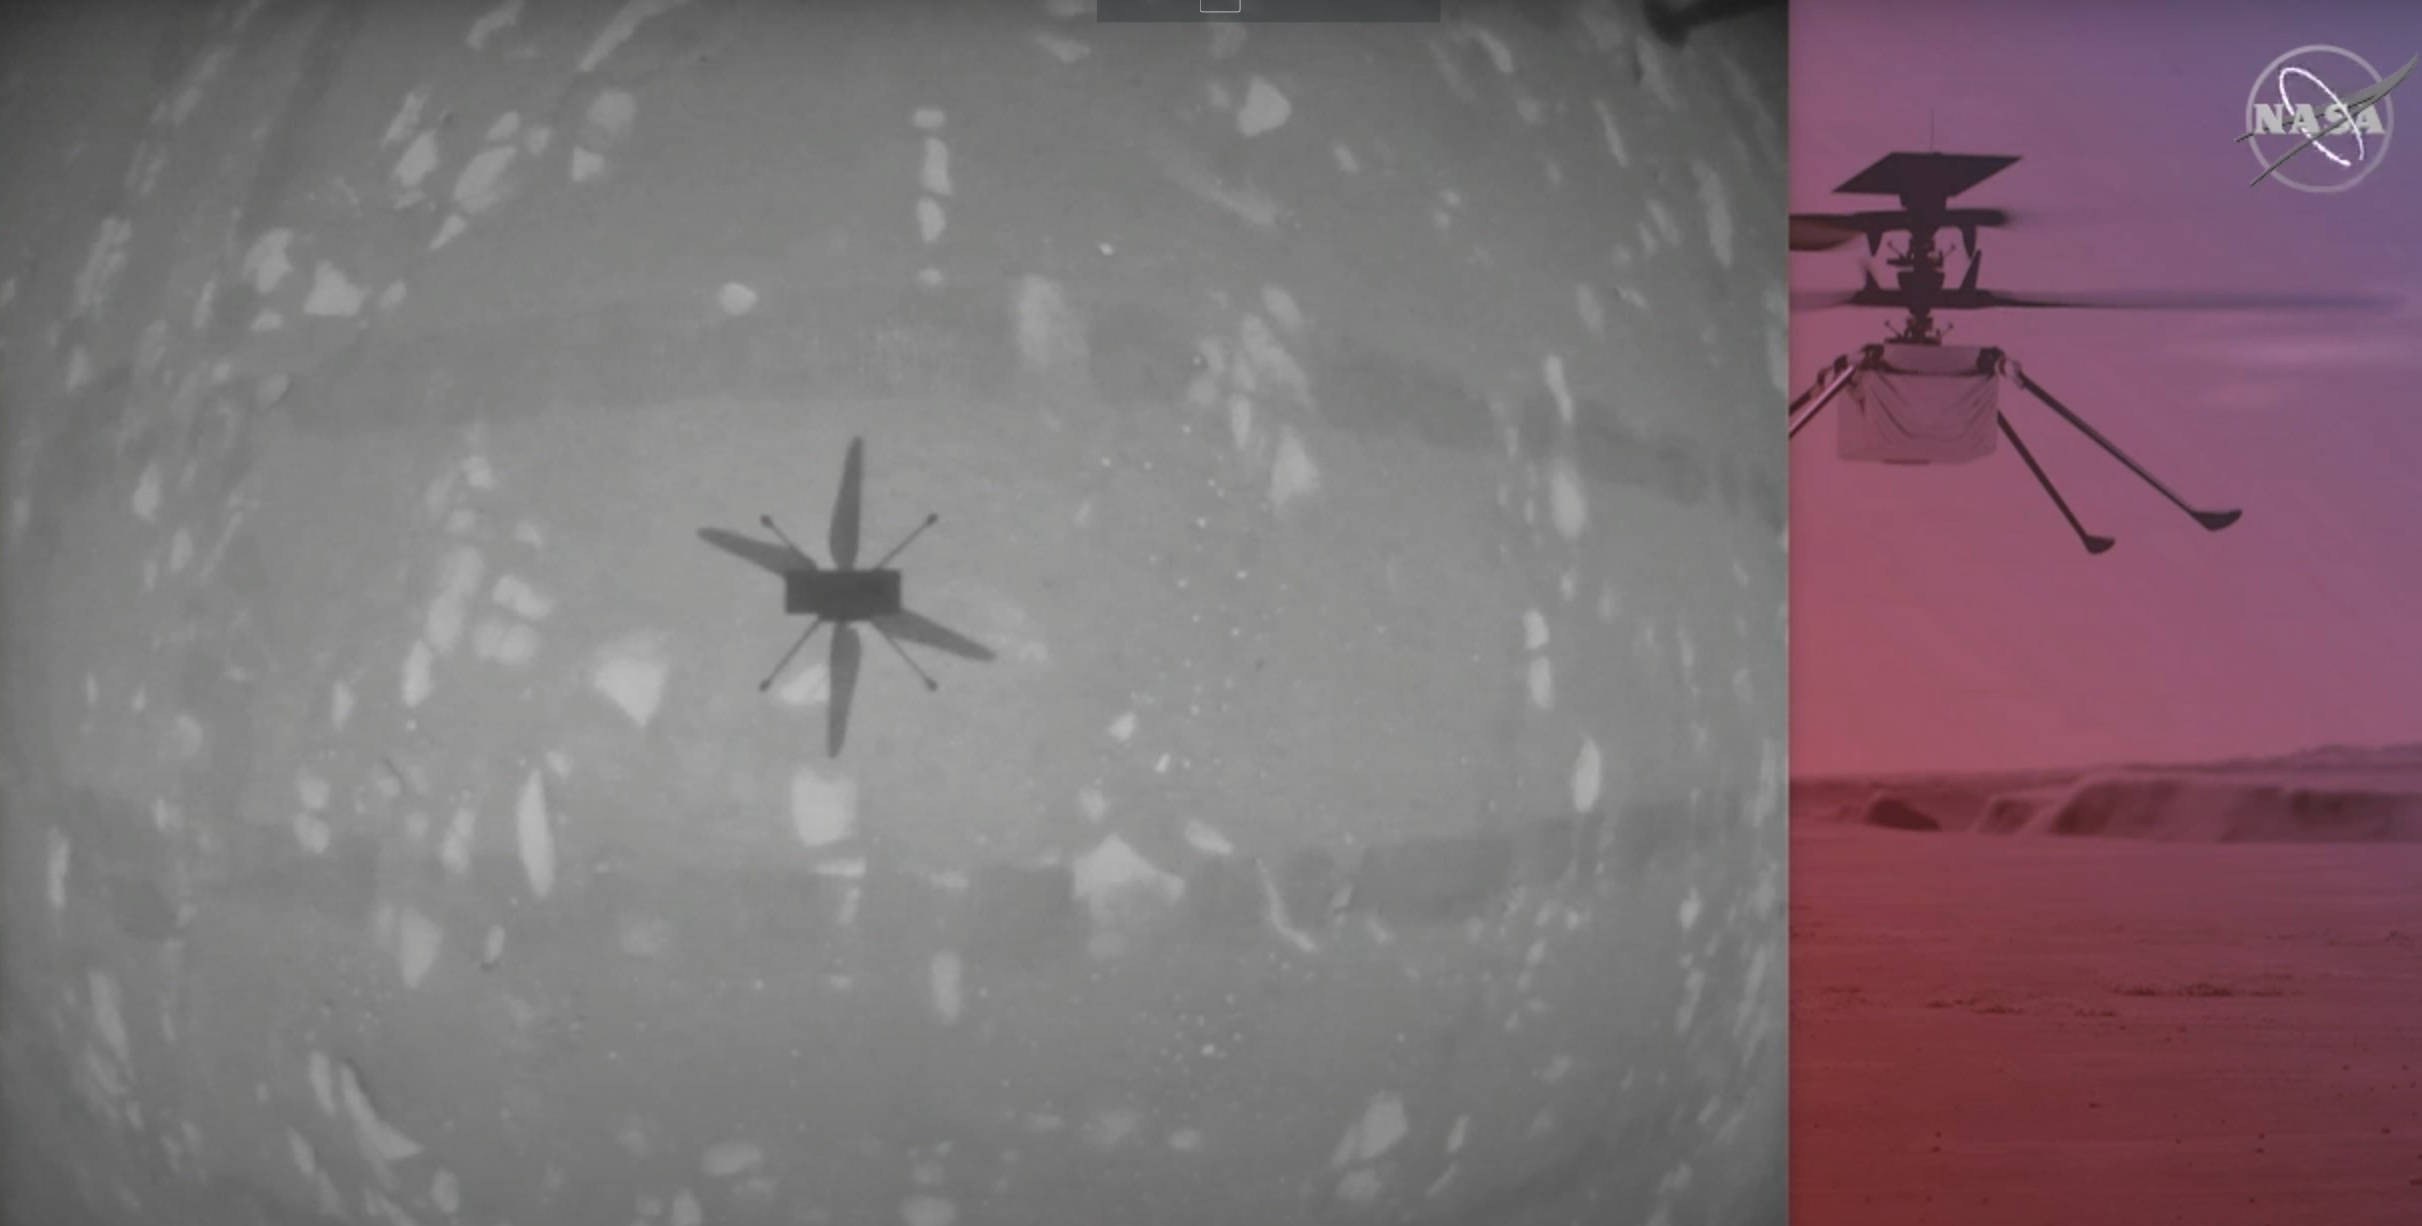 On a dusty red planet almost 290 million km away... NASA's Ingenuity Mars Helicopter flies